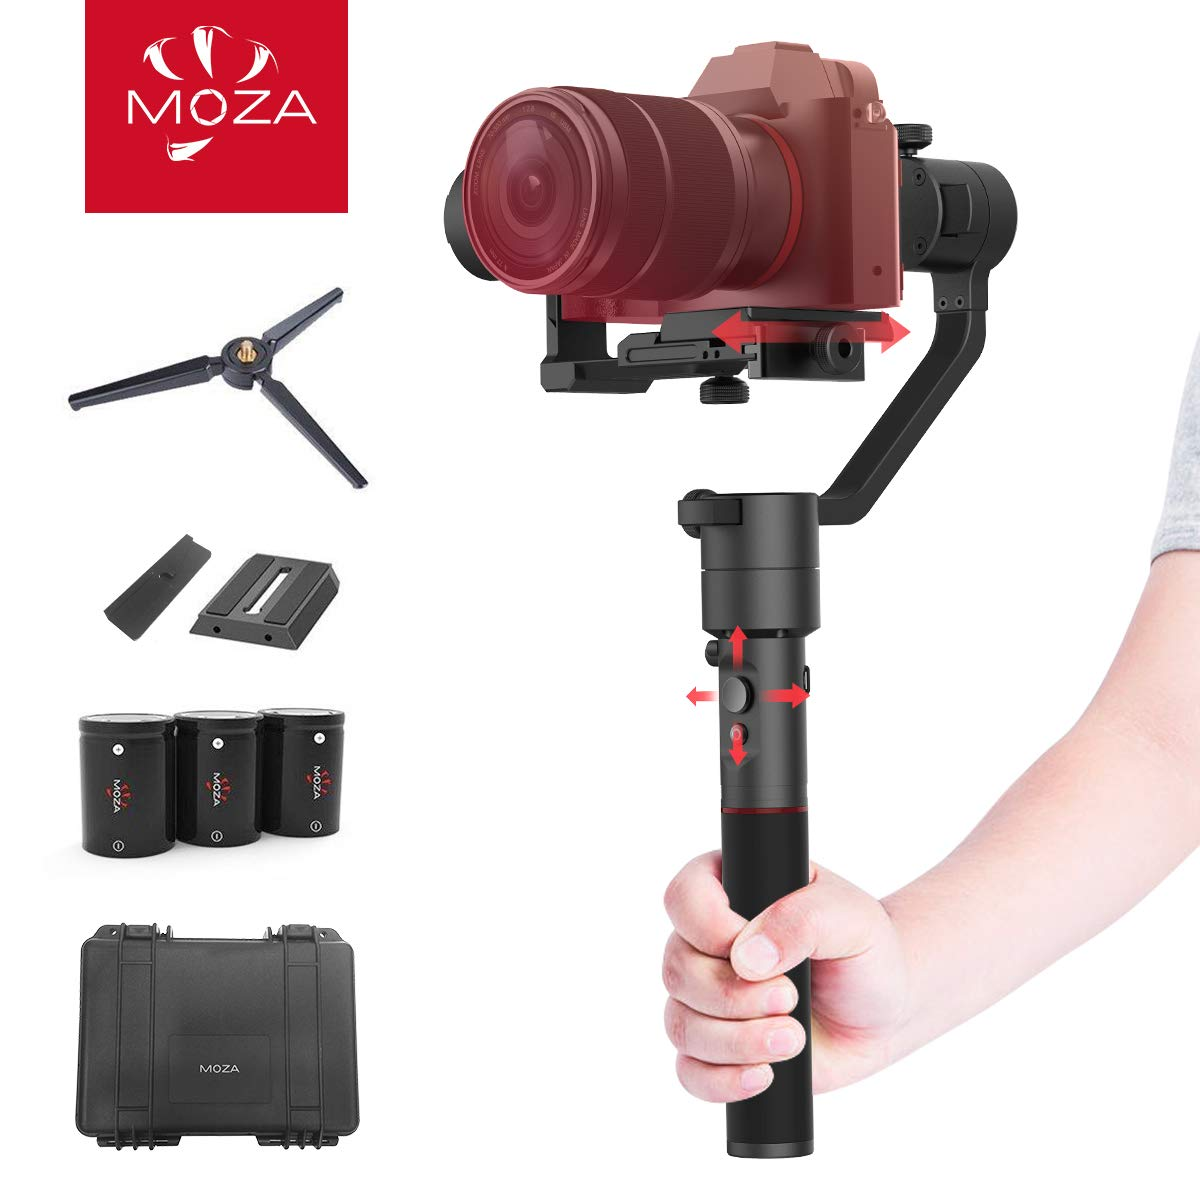 MOZA AirCross 3-Axis Gimbal Stabilizer for Mirrorless Camera up to 3.9 Lb, Auto-Tuning, Time-Lapse Shooting, 12Hrs Run-time i.e. Sony A7SII/A6500/A6300/A9/RX100, Pana GH3/4/5 by MOZA